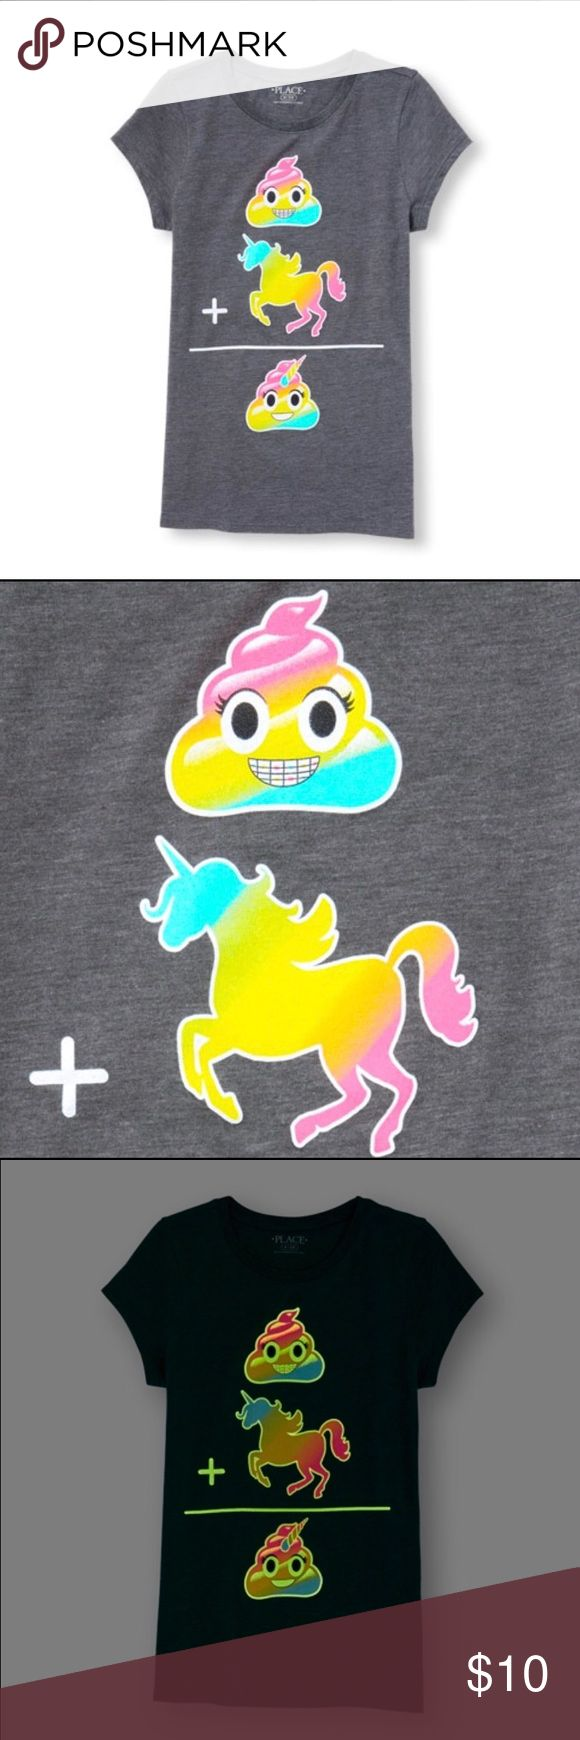 Girl's Cute Emoji Top Selling a NWT Girl's Girl's Cute Emoji Top.  Outside lining of the emojis are glow in the dark!  Made of 50% cotton/50% polyester jersey; side-dyed for a heathered look. Front of top comes decorated with: (Rainbow Swirl Emoji) + (Rainbow Unicorn Emoji) = (Rainbow Unicorn Swirl Emoji) Size Medium (7/8). The Children's Place Shirts & Tops Tees - Short Sleeve